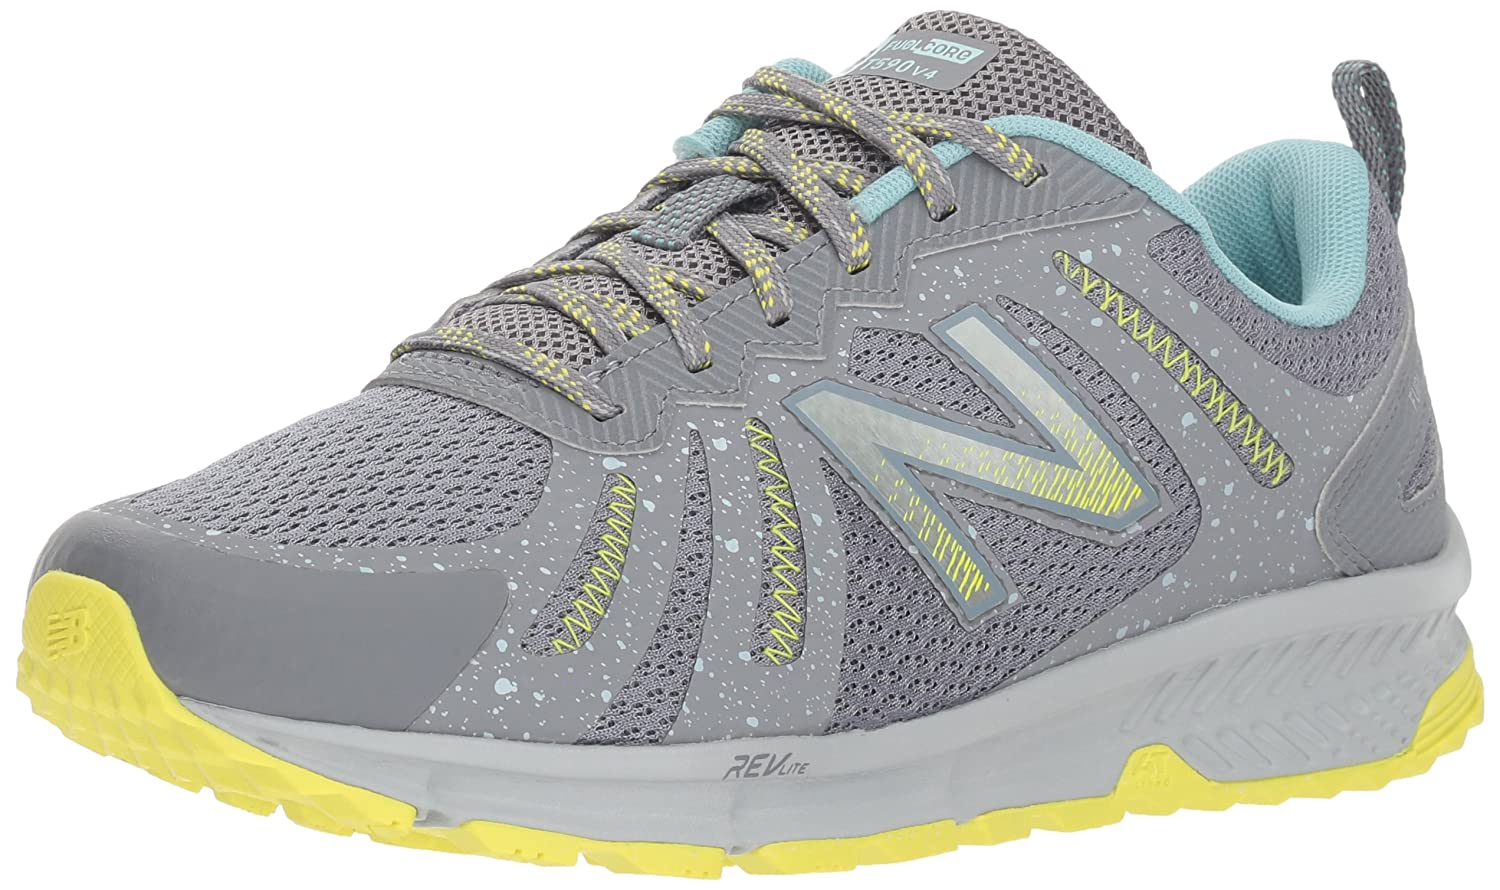 New Balance Women's Shoe 590v4 FuelCore Trail Running Shoe Women's B075R3RDJY 7.5 D US|Gunmetal 87cdad